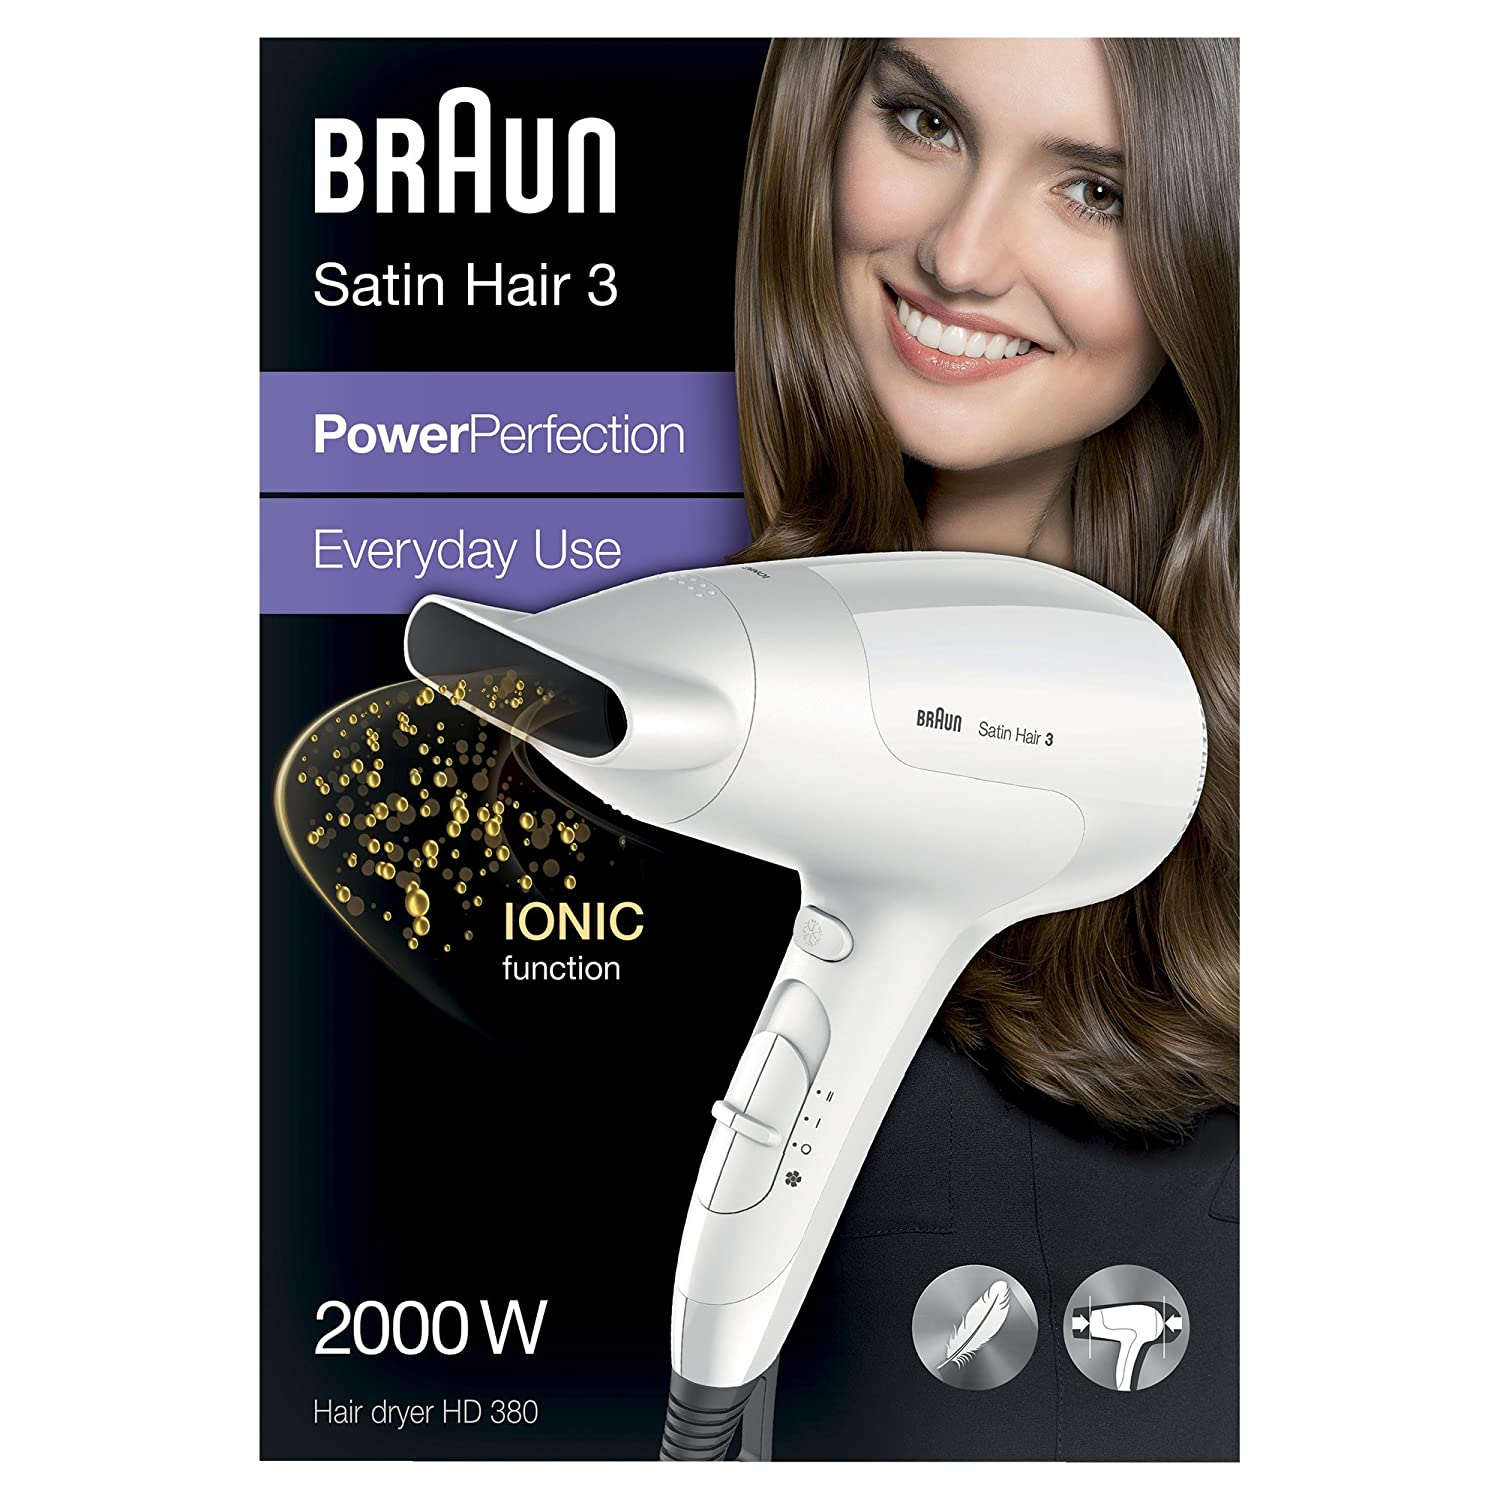 Satin-Hair 3 PowerPerfection HD380 dryer